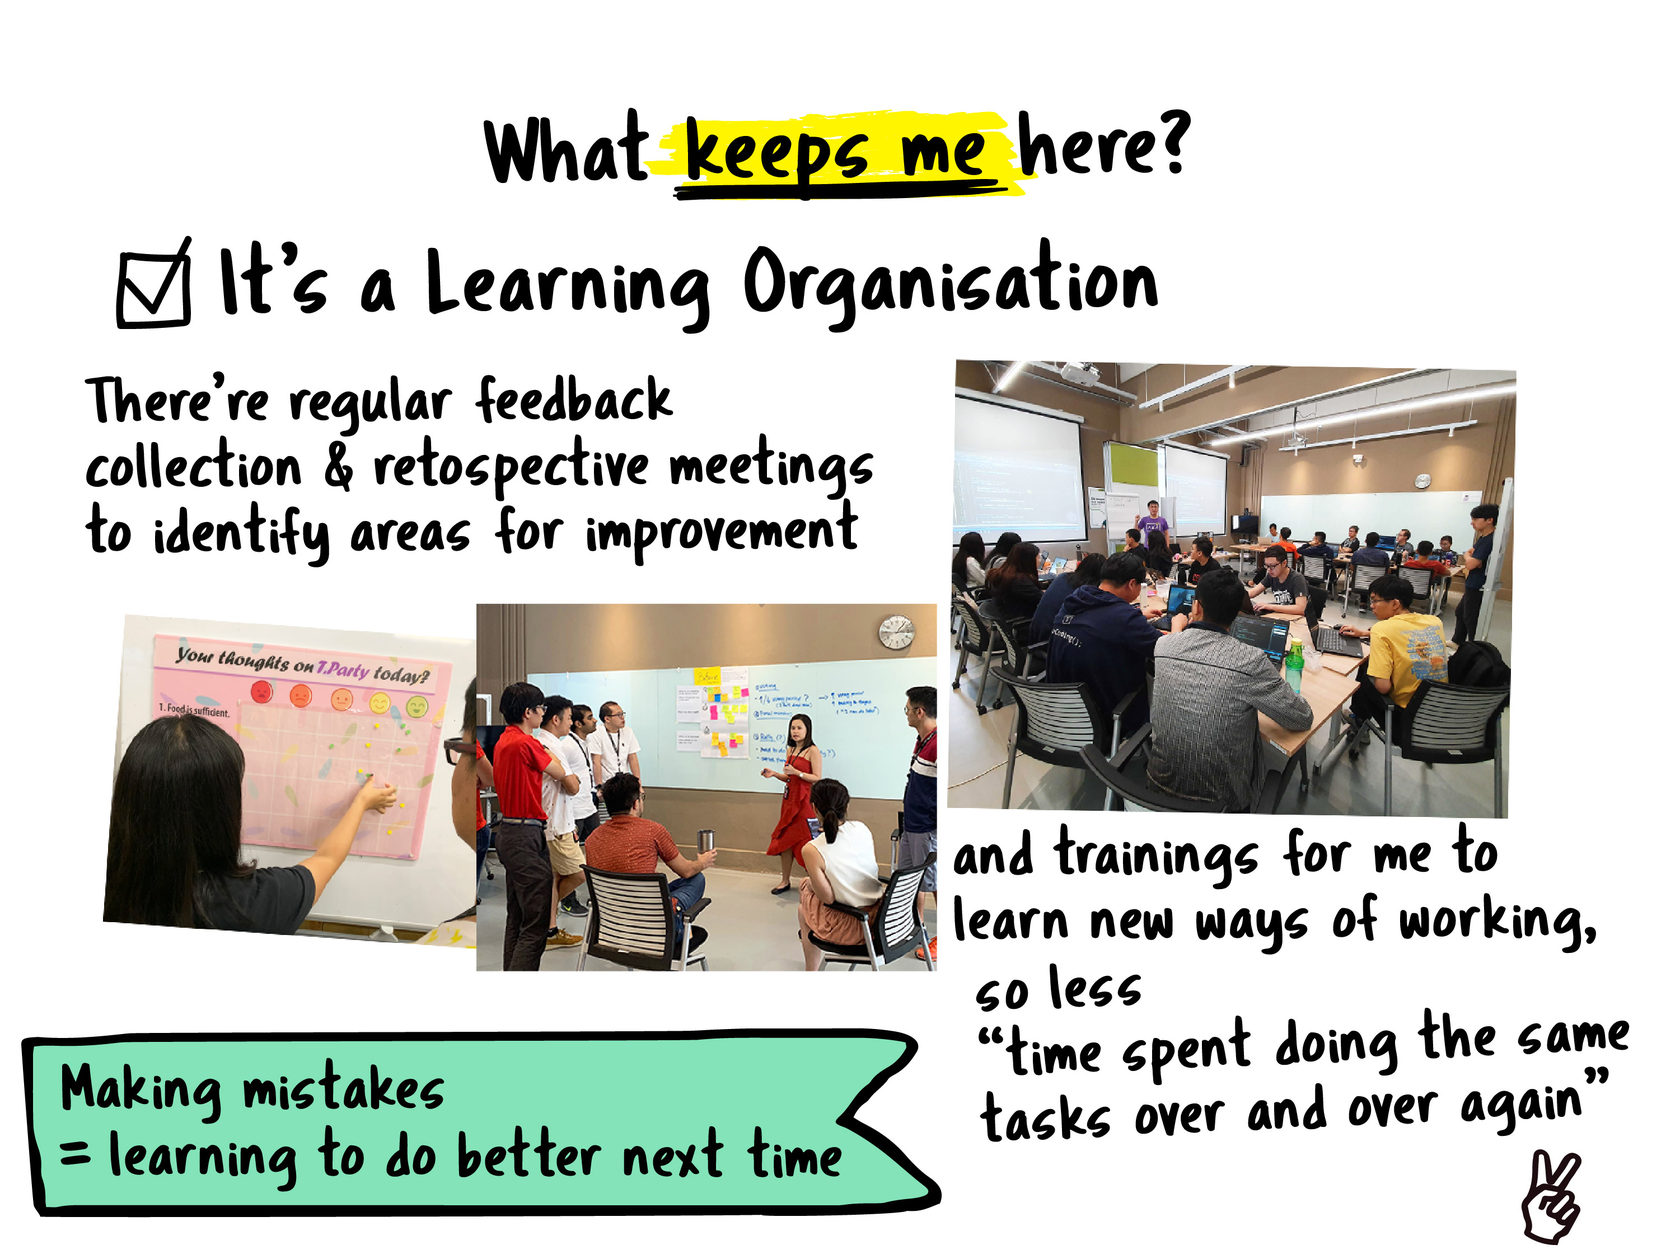 #1 #NeverStopImproving  There's regular feedback collection, retrospective meetings to identify areas for improvement and plenty of on job and on site trainings for me to learn new ways of working, so no more time spent doing the same tasks over and over again. Also, maybe it is the Agile mindset at work, but making mistakes is part of learning to do better next time!